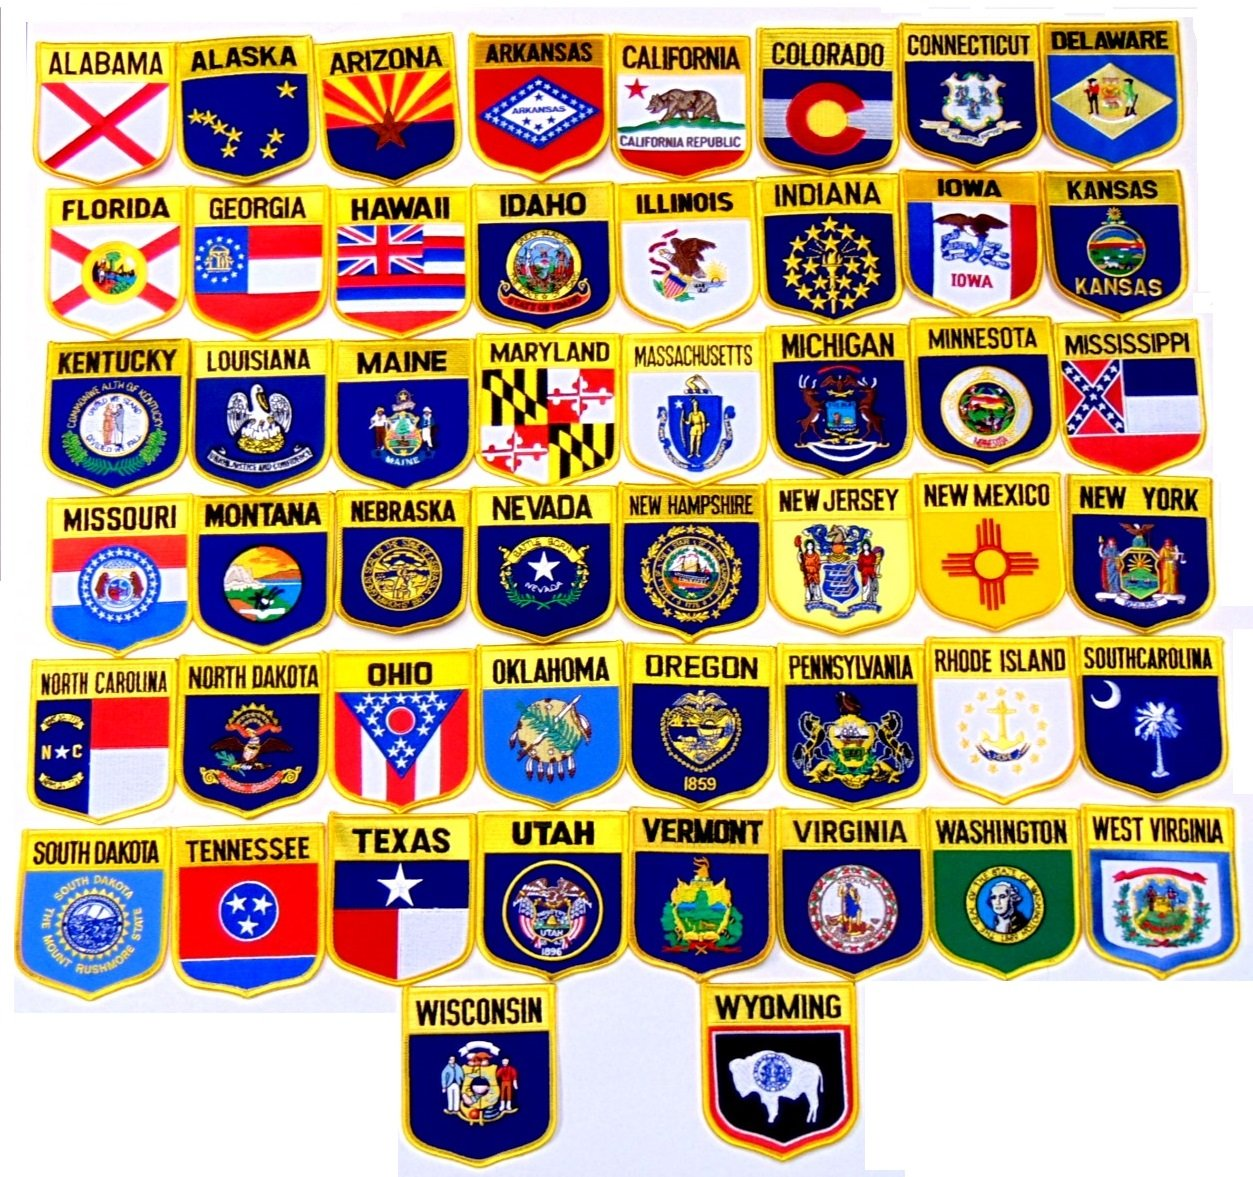 United States State Shield Flag Patch Set!! 50 State Shield Flag Patches, Measure 3 1/8'' x 3 1/2'', One Patch for Each State in The Country Embroidered Iron On or Sew On Flag Patch Emblem by World Flags Direct